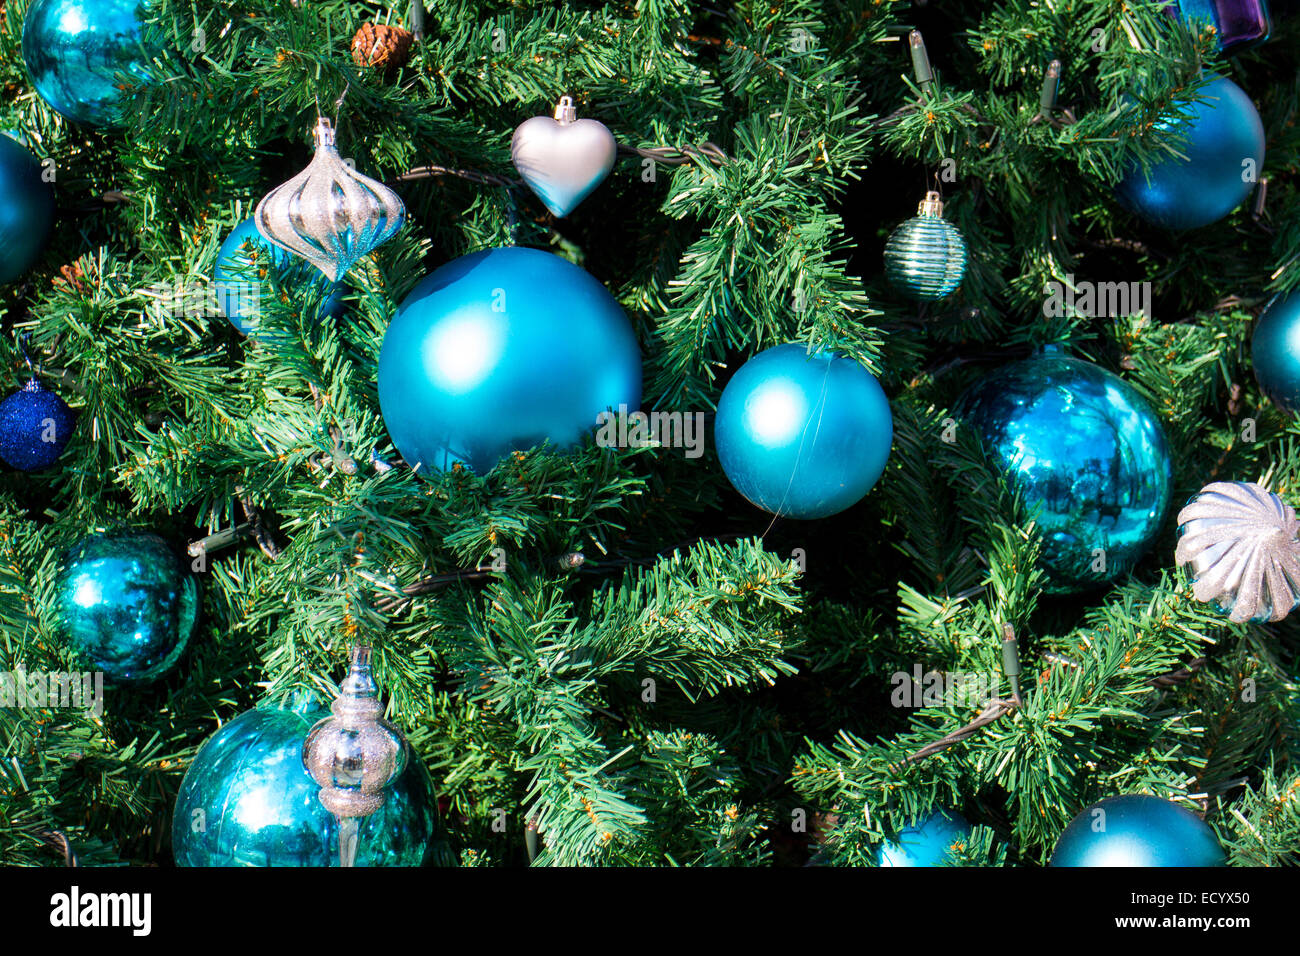 Tinsel Border Stock Photos & Tinsel Border Stock Images - Alamy